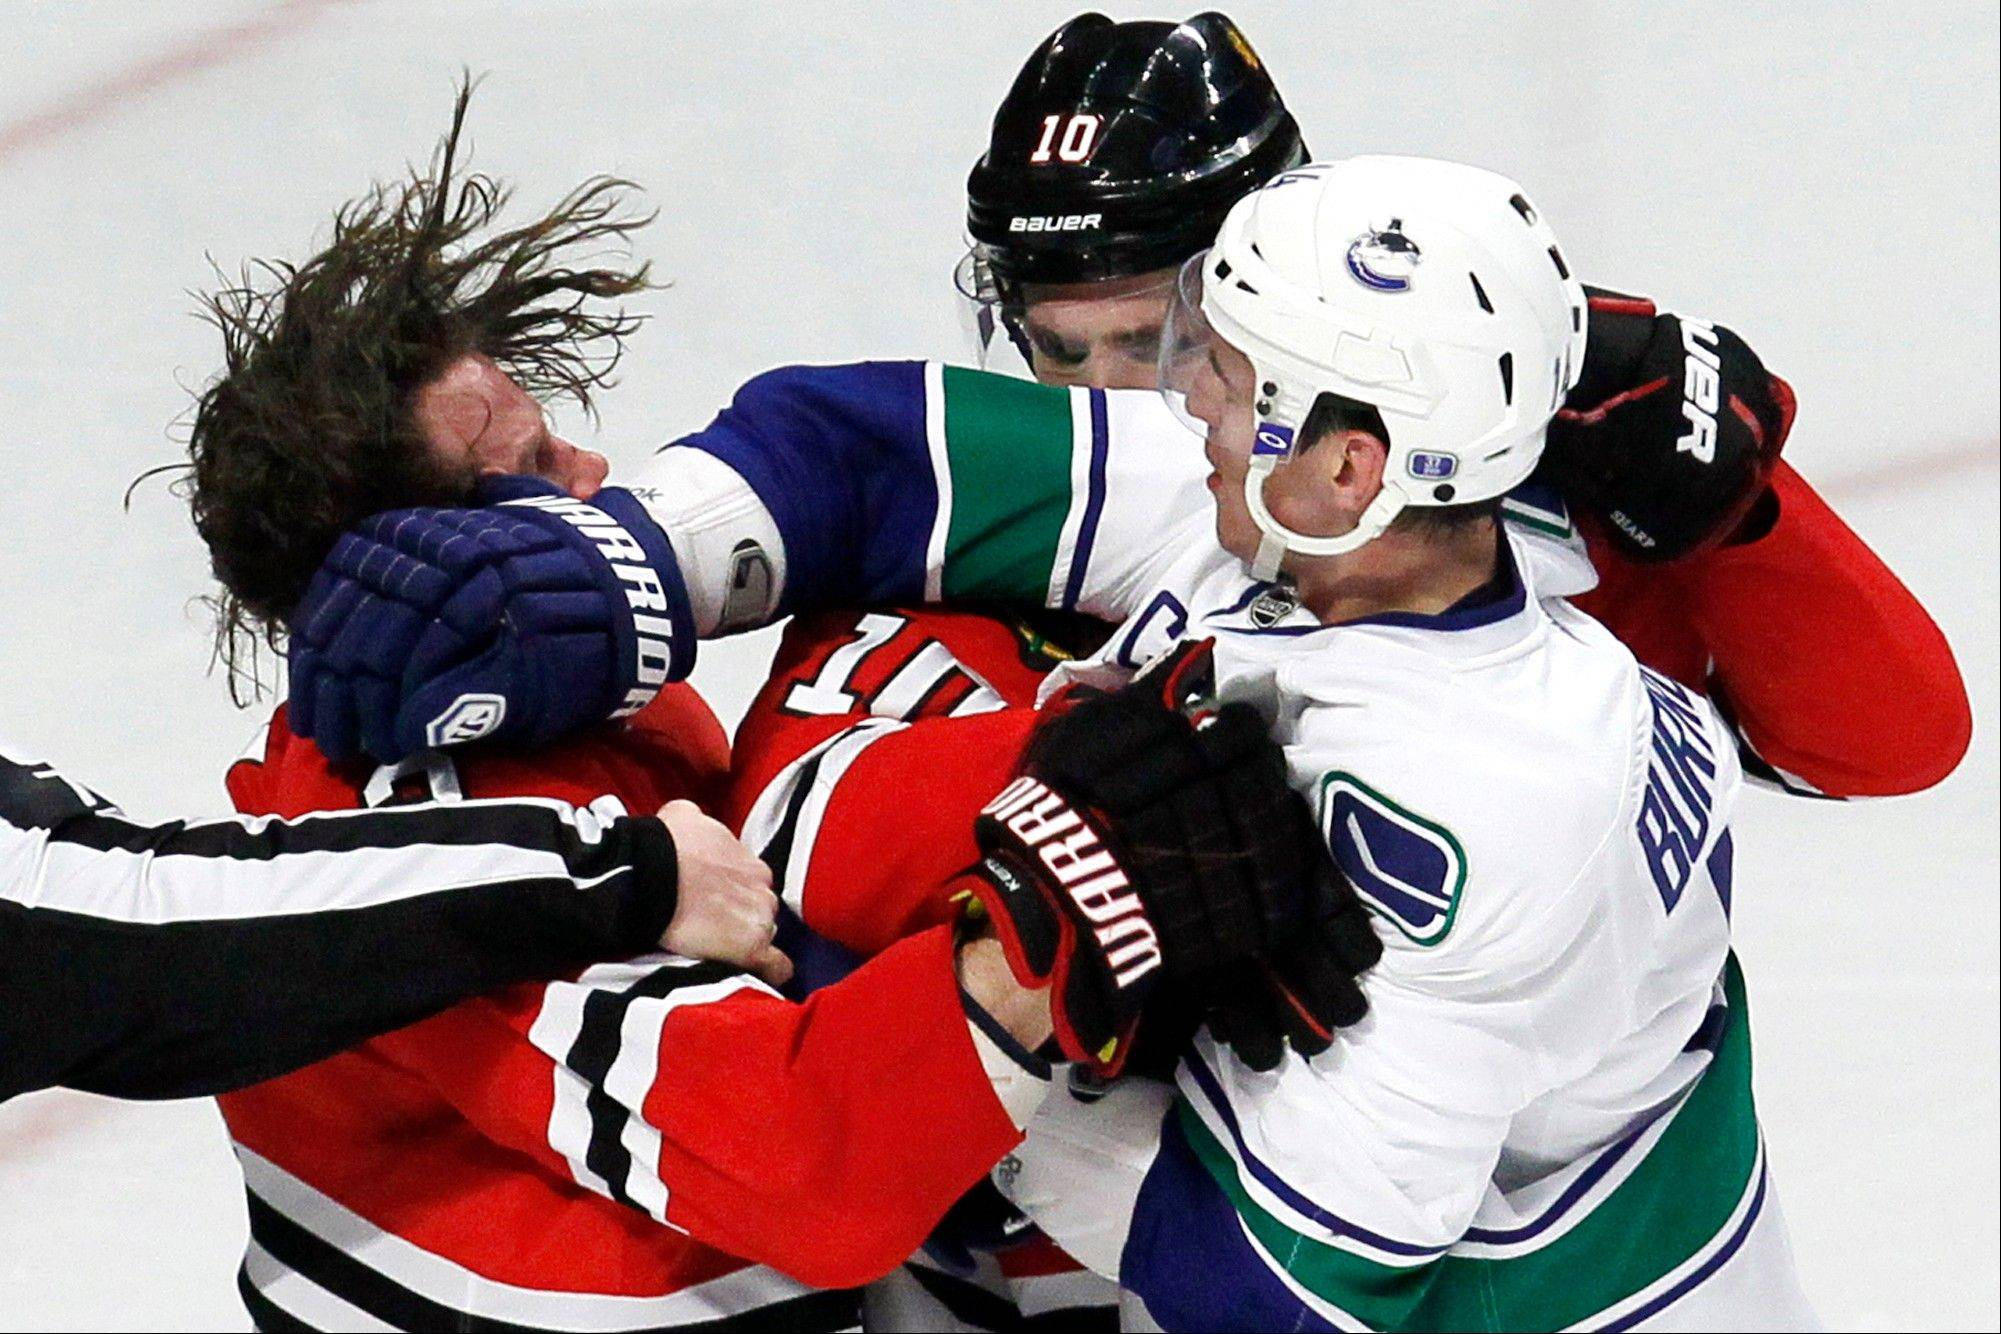 Vancouver Canucks right wing Alex Burrows hits Blackhawks defenseman Duncan Keith in the face as Patrick Sharp tries to break them apart Wednesday during the second period. Both Burrows and Keith received 10 minute game misconduct penalties.